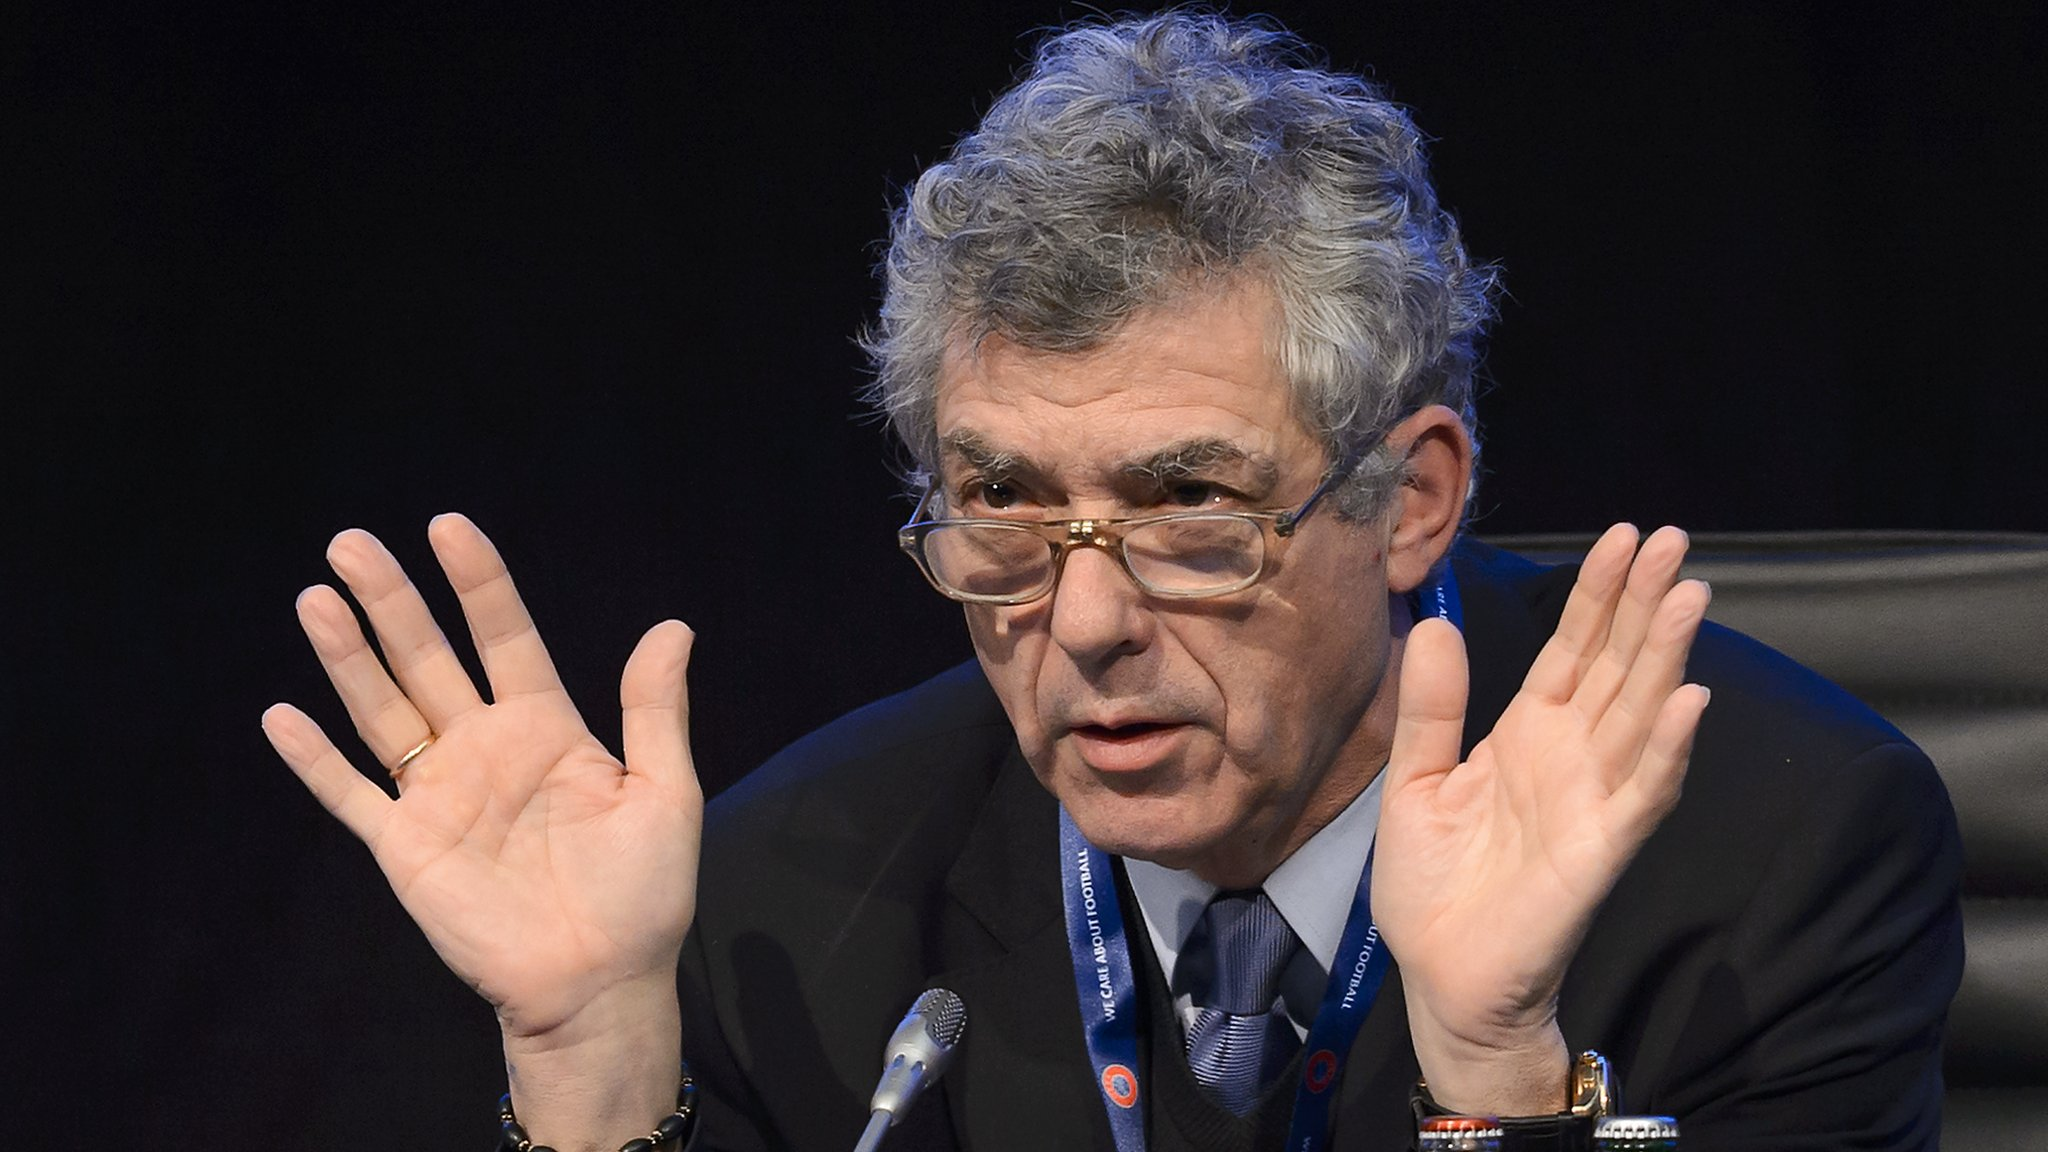 Suspended Spanish football chief Villar resigns from Uefa and Fifa